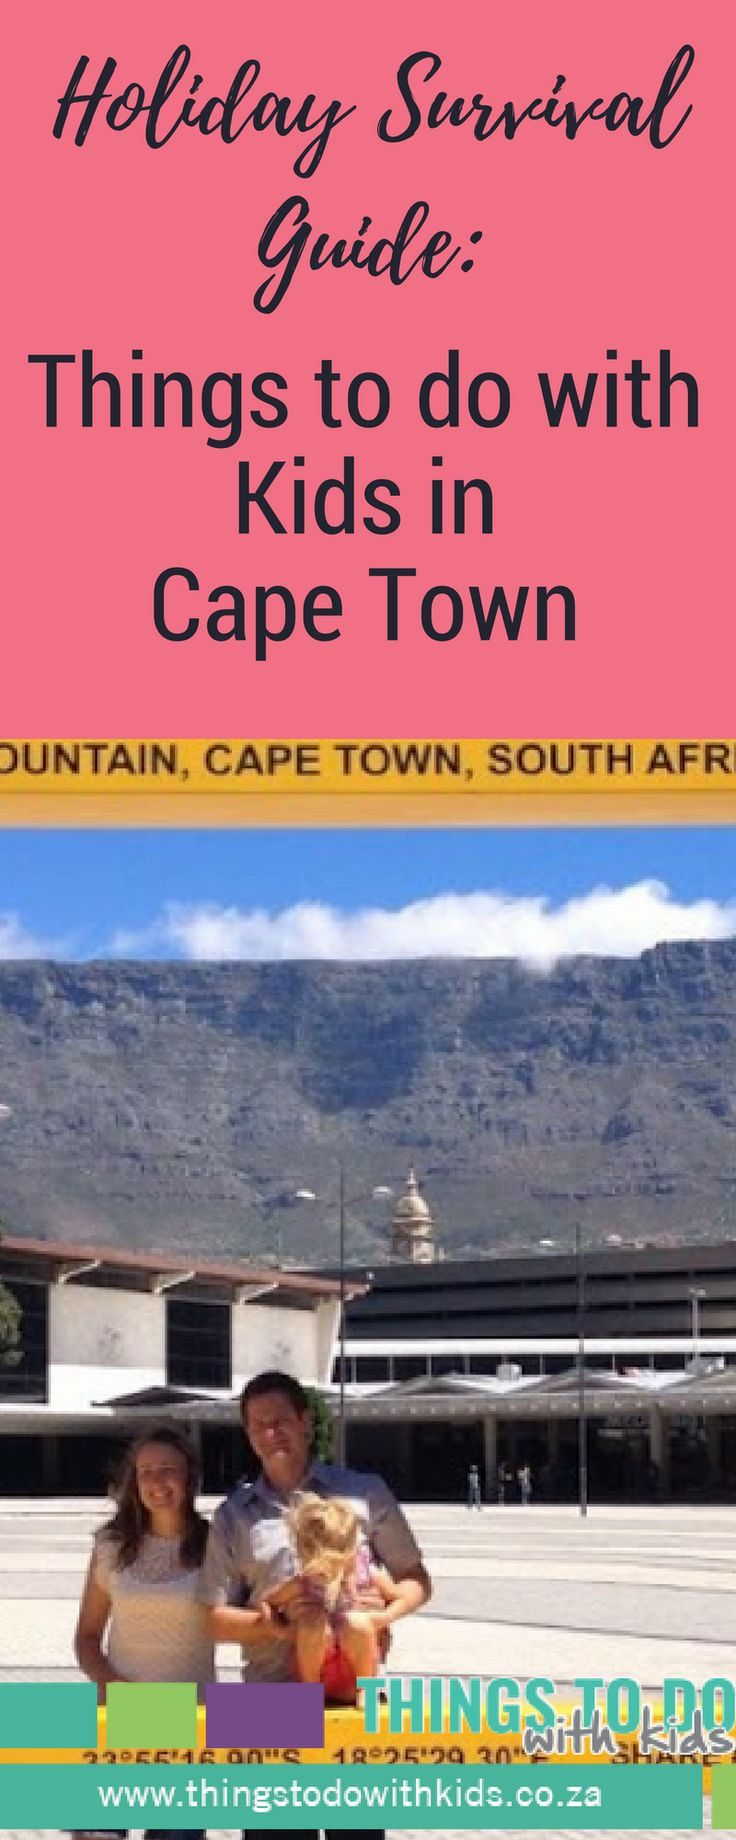 Winter Holiday Entertainment in Cape Town | Things to do with Kids this holiday in Cape Town | Activities and Excursions in Cape Town | What's On this winter in Cape Town | Things to do with Kids | Activities & Excursions